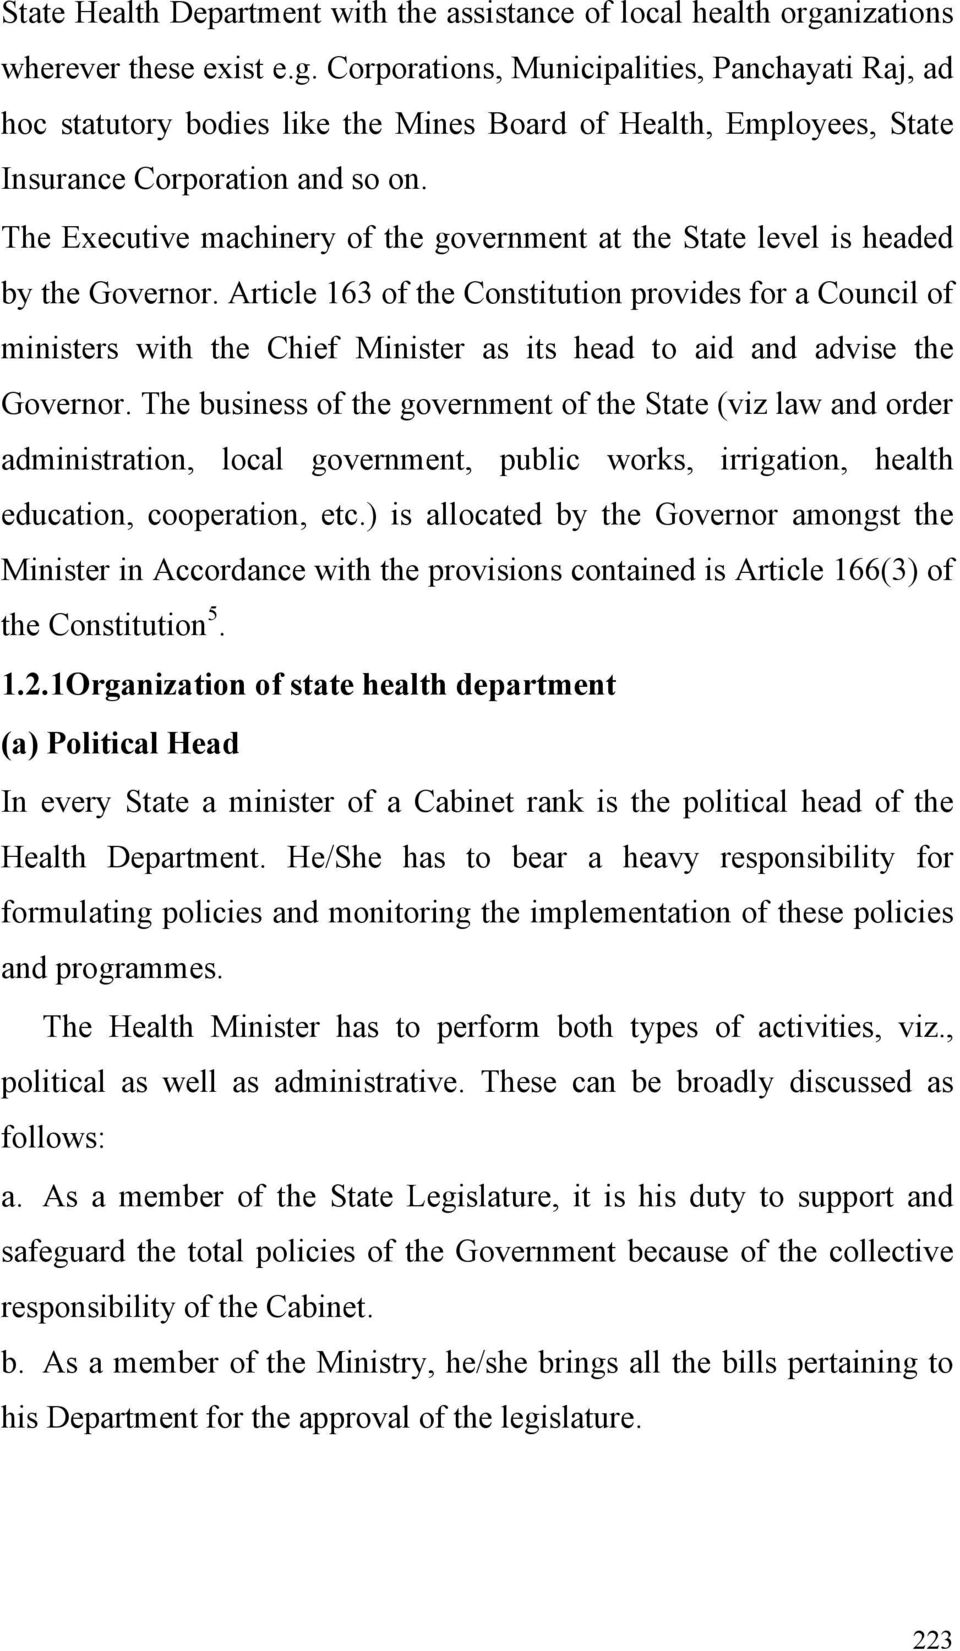 The Executive machinery of the government at the State level is headed by the Governor.